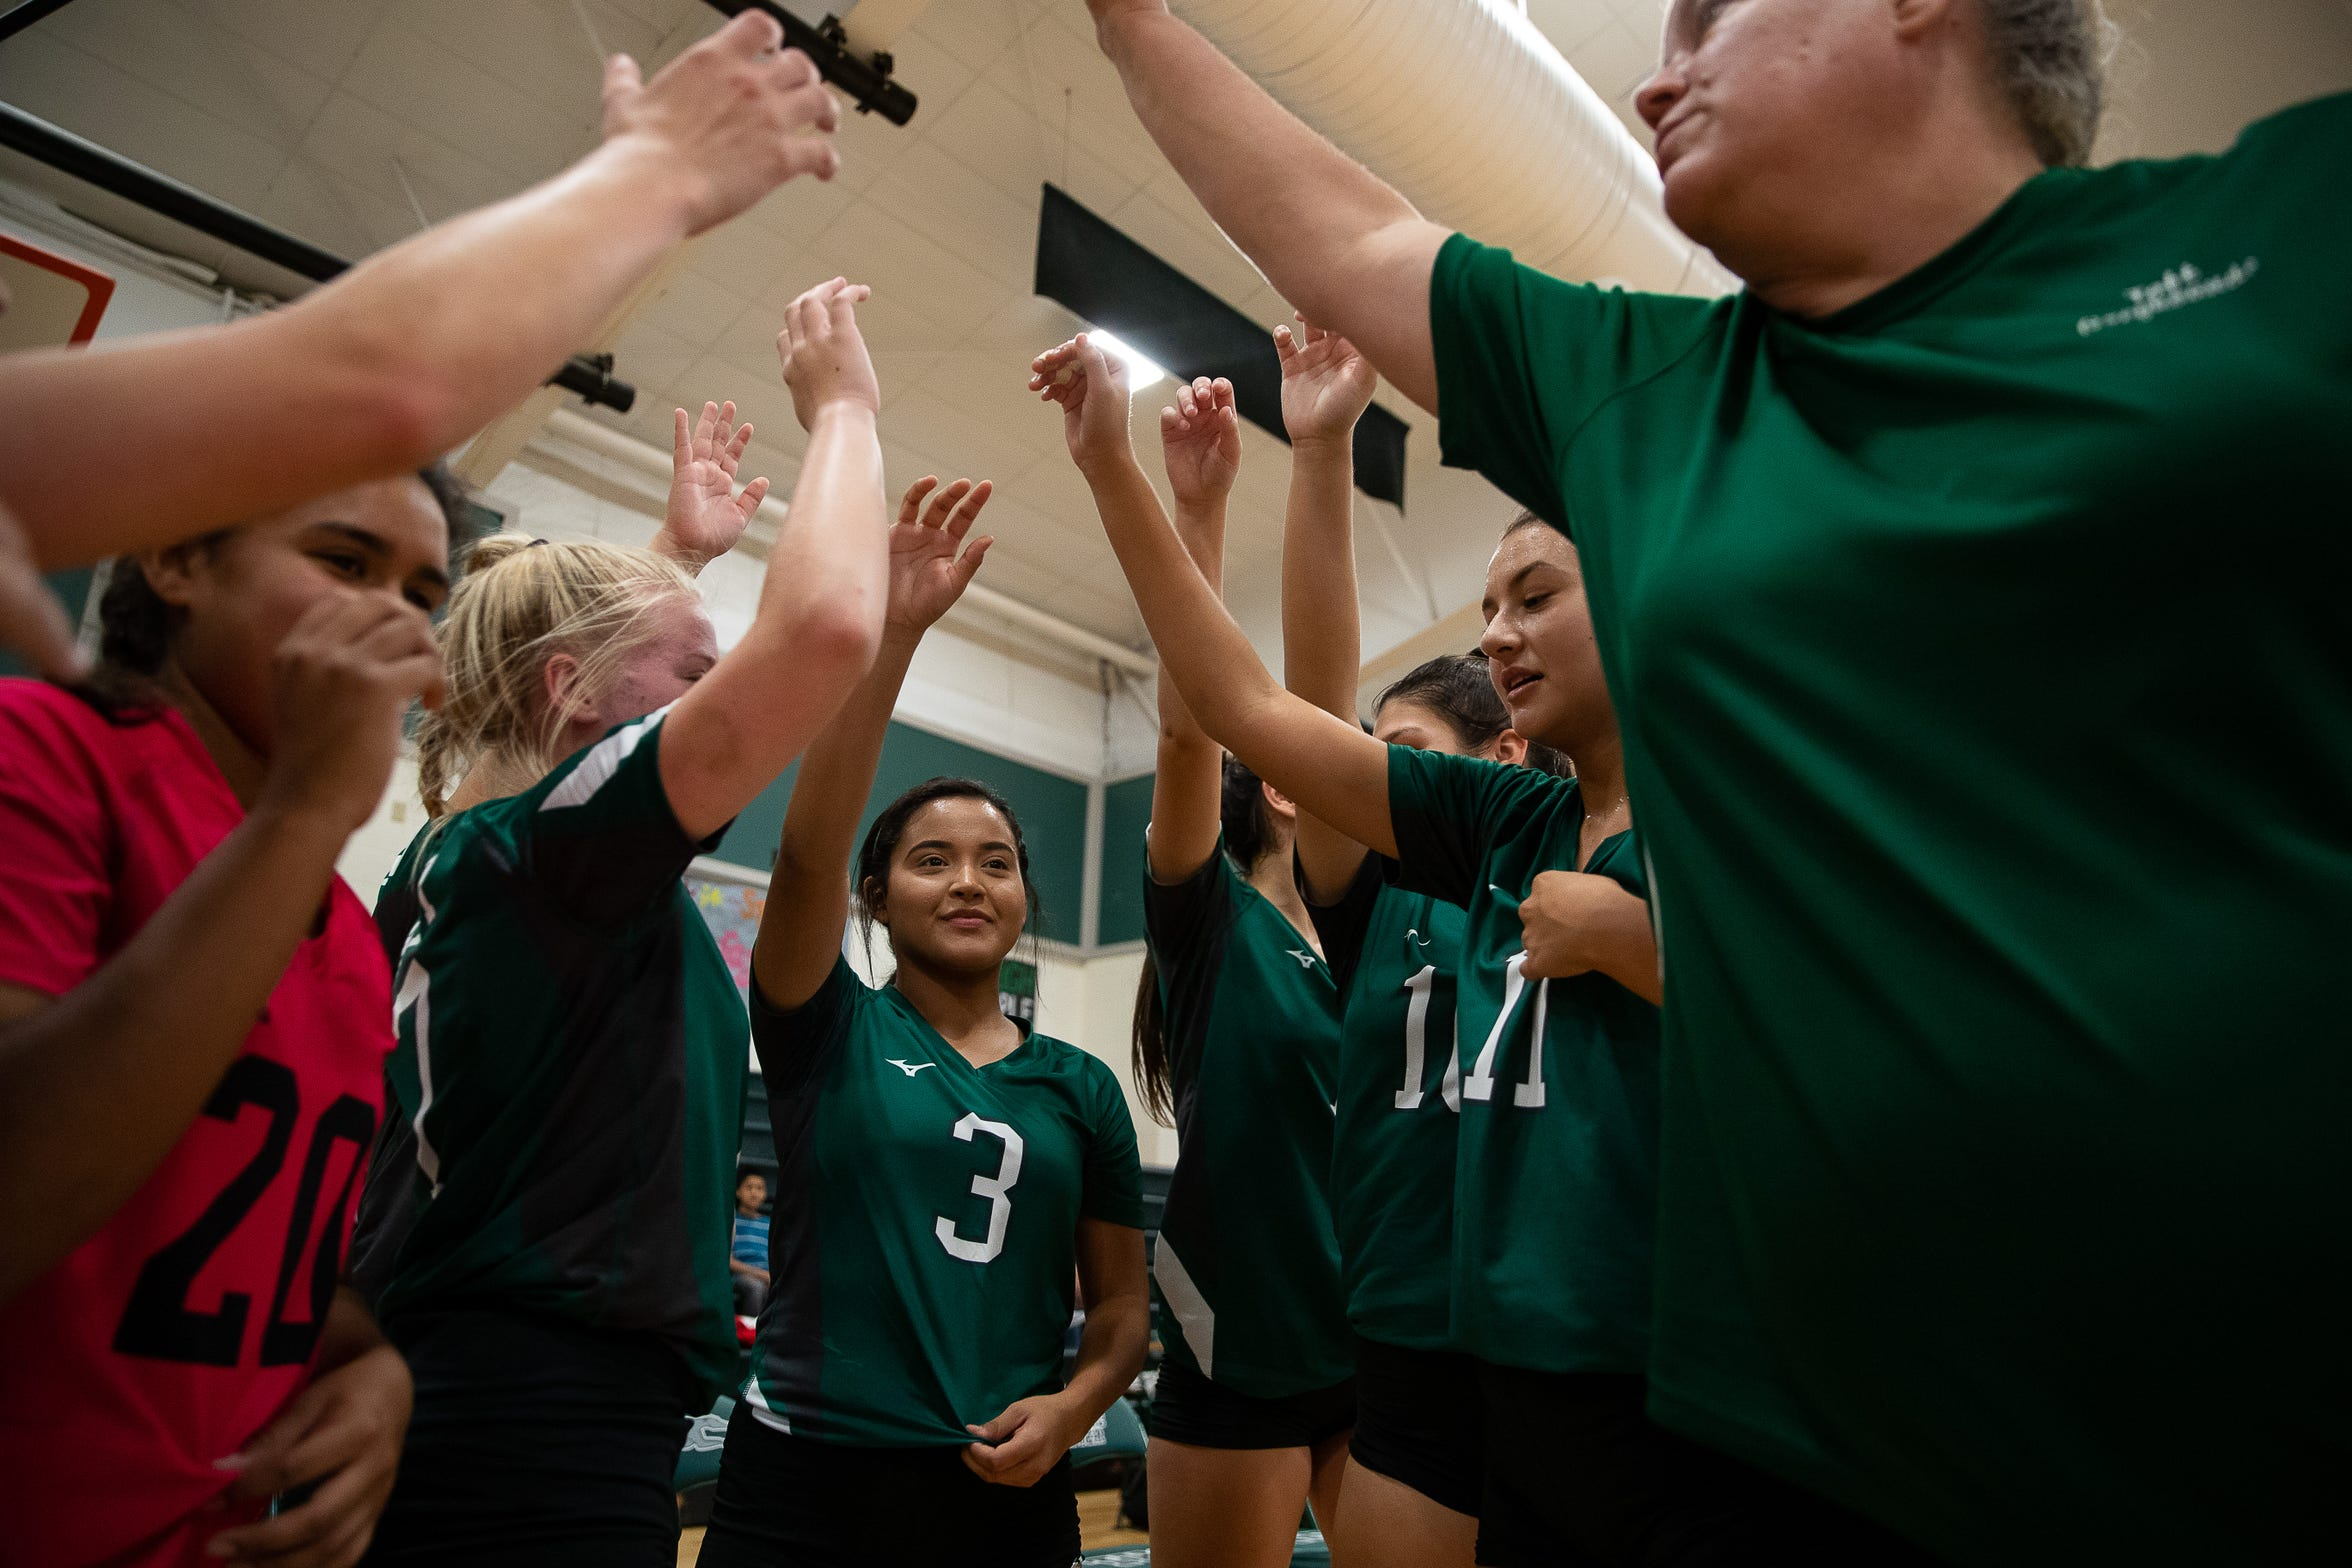 Taft players huddle between games in their newly rebuilt gymnasium on Thursday, Aug. 23, 2018. Their  gym was heavily damaged during Hurricane Harvey and have played and practiced on the road in 2017.